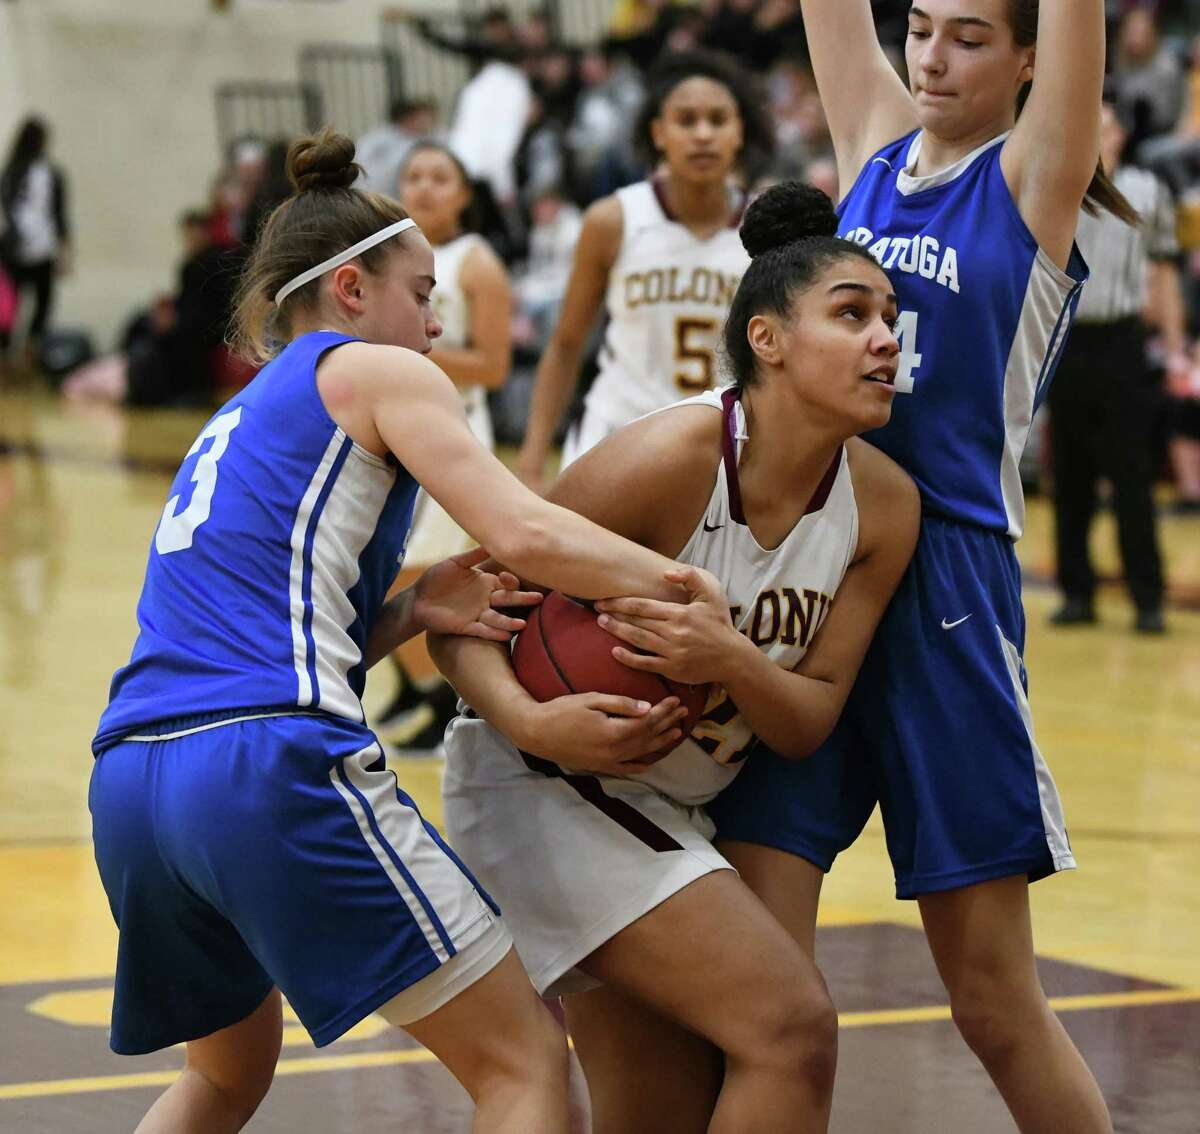 Colonie's Sareena DiCerbo drives to the basket defended by Saratoga's Catherine Cairins, left, and Natasha Chudy, right, during a basketball game on Tuesday, Feb. 5, 2019 in Colonie, N.Y. (Lori Van Buren/Times Union)